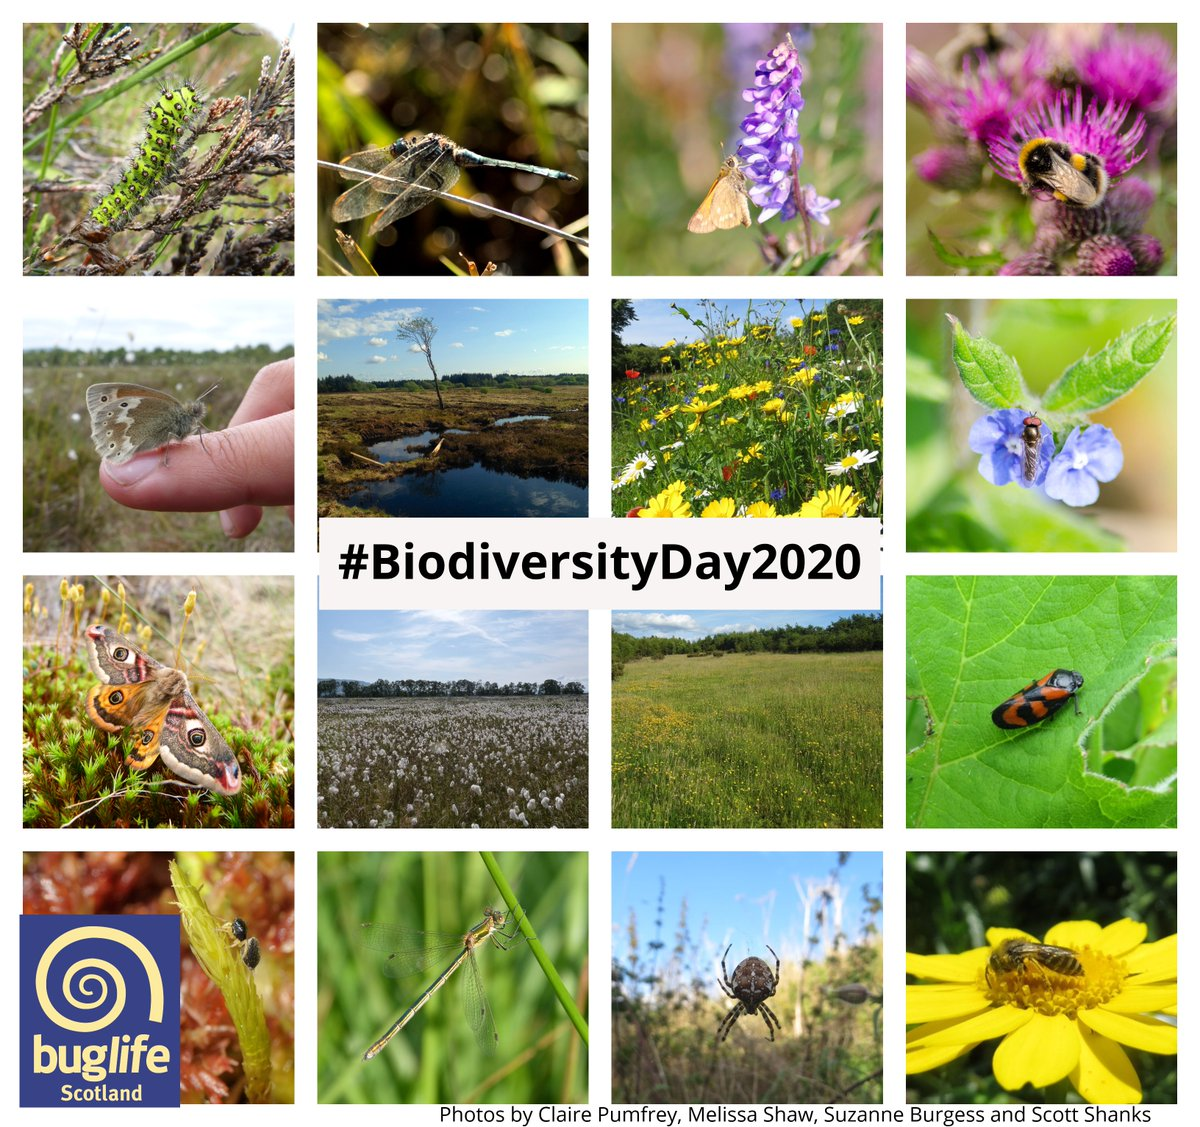 Peatlands & grasslands are vital for biodiversity & are 2 of the main habitats we are restoring through our projects. When managed properly these habitats are havens for a huge range of invertebrates & other wildlife, including many specialist species!#BiodiversityDay2020 pic.twitter.com/n17TV2x2MJ